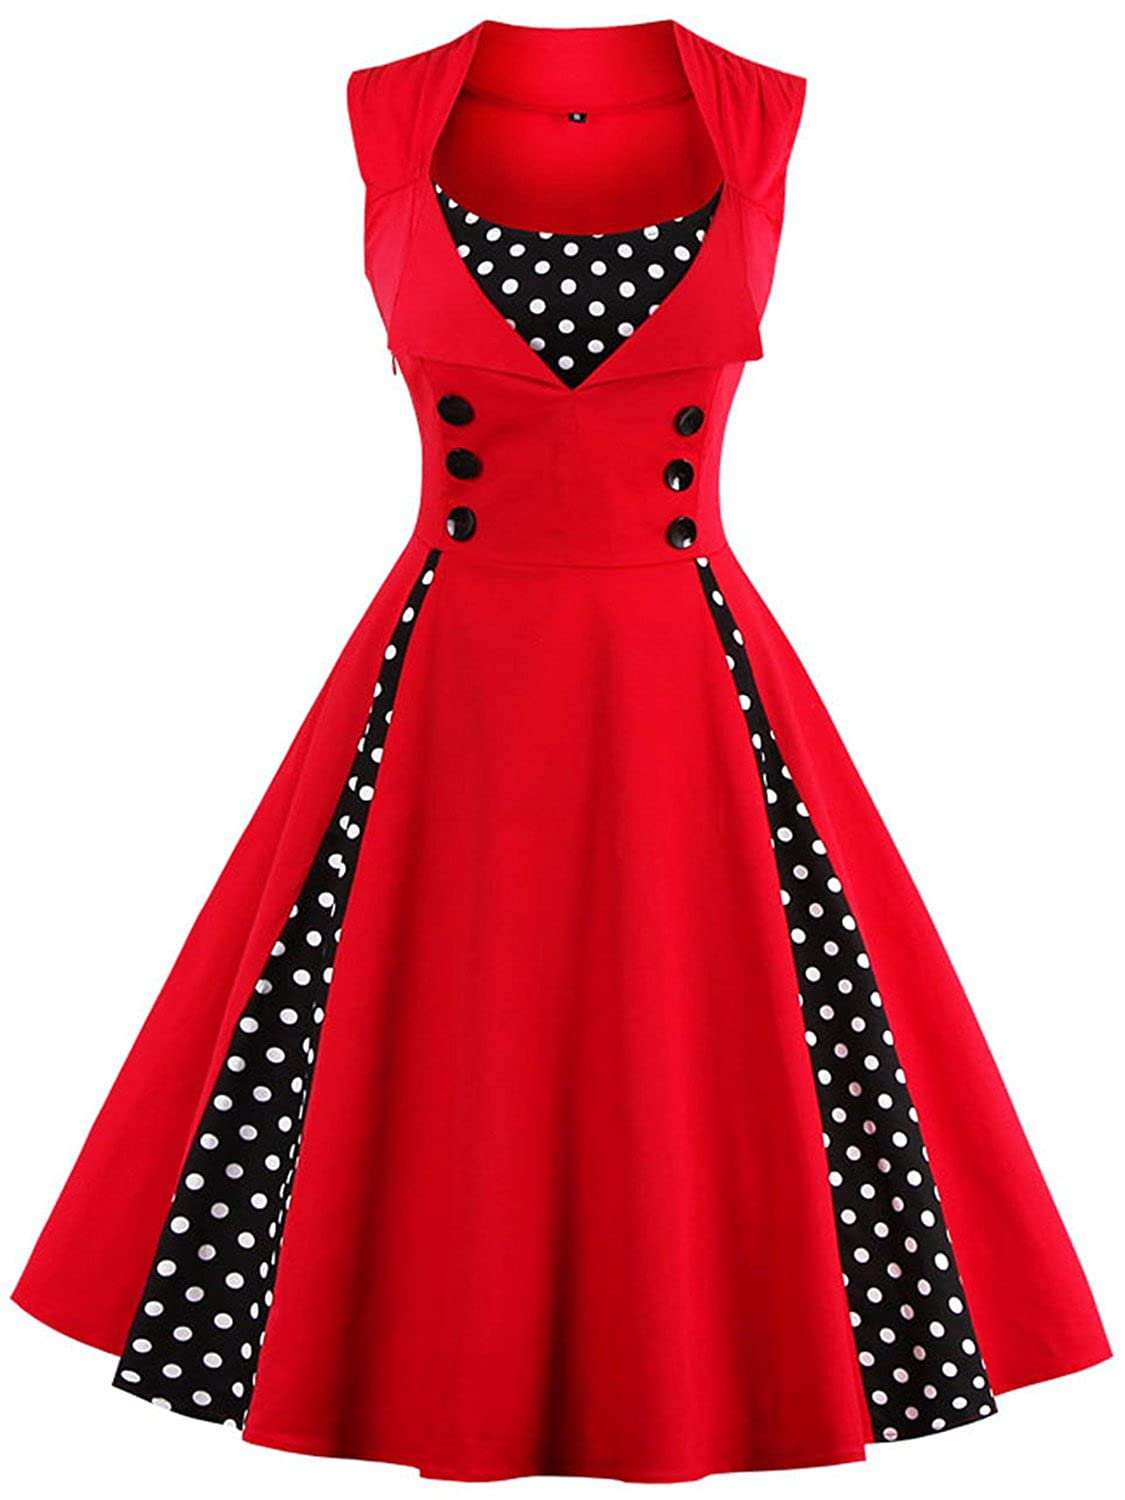 a01962b83a82 This short vintage rockabilly cocktail dress features delicate polka dot